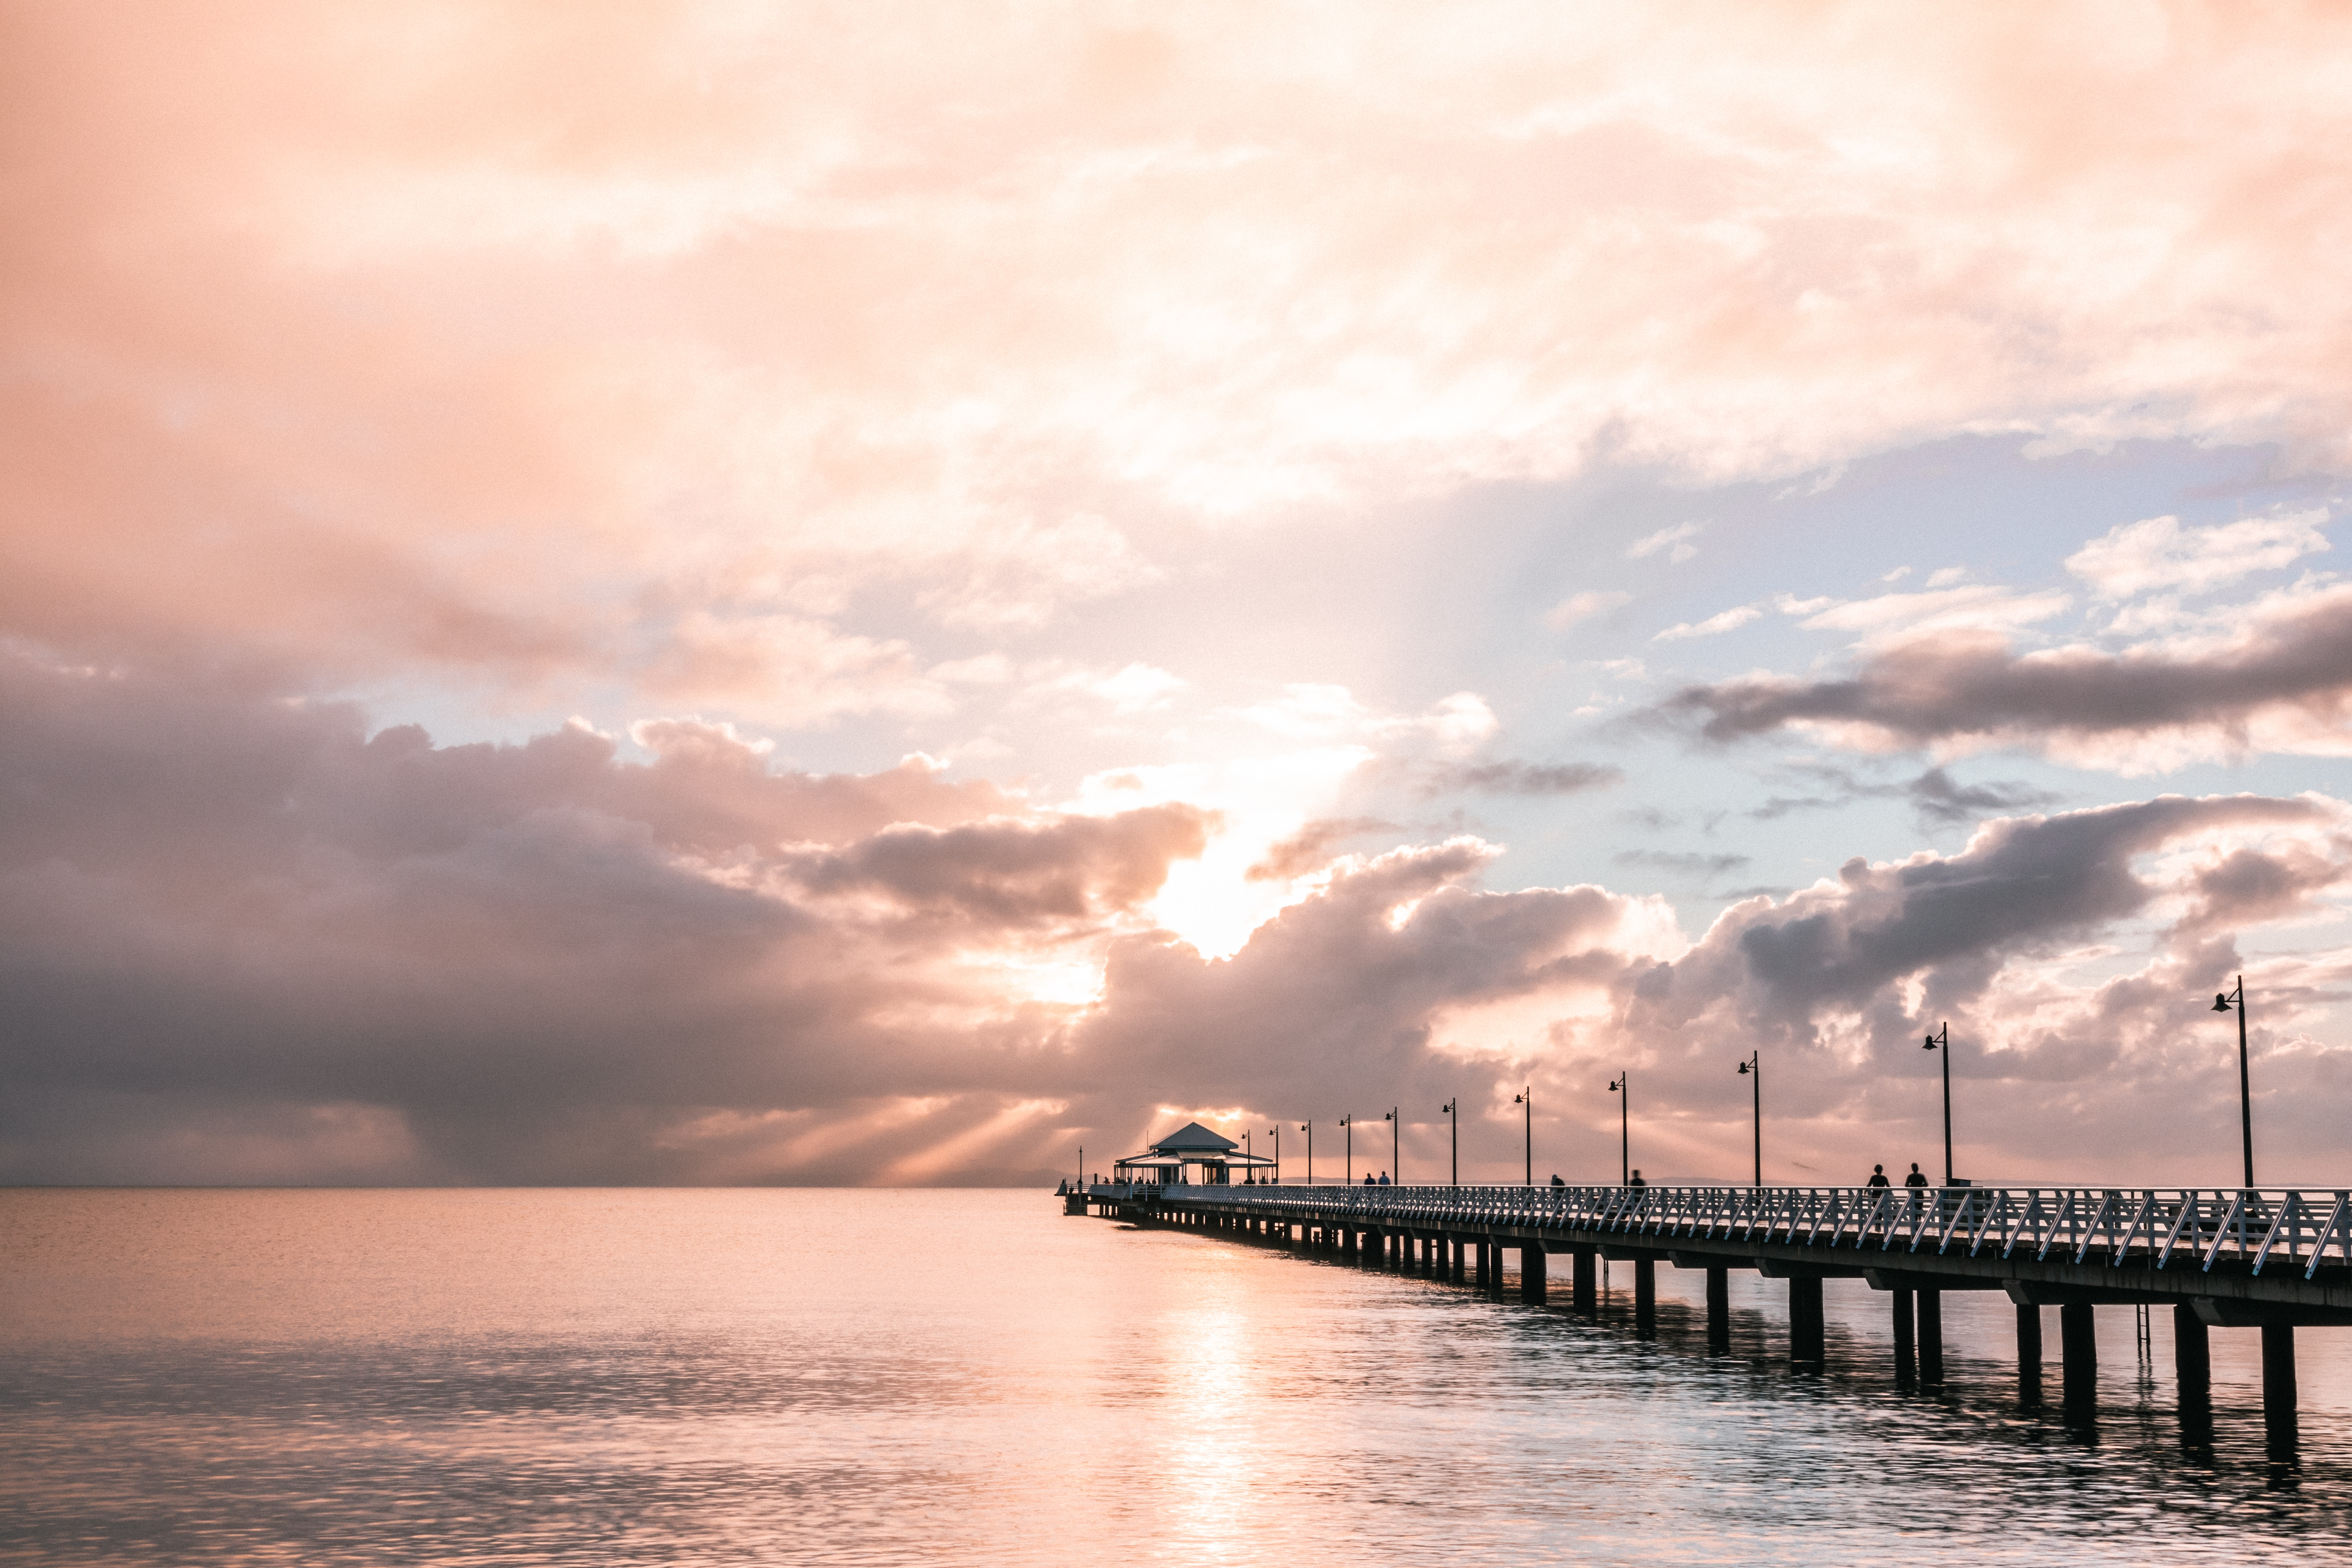 59640 download wallpaper Nature, Sea, Clouds, Horizon, Pier, Silhouettes screensavers and pictures for free